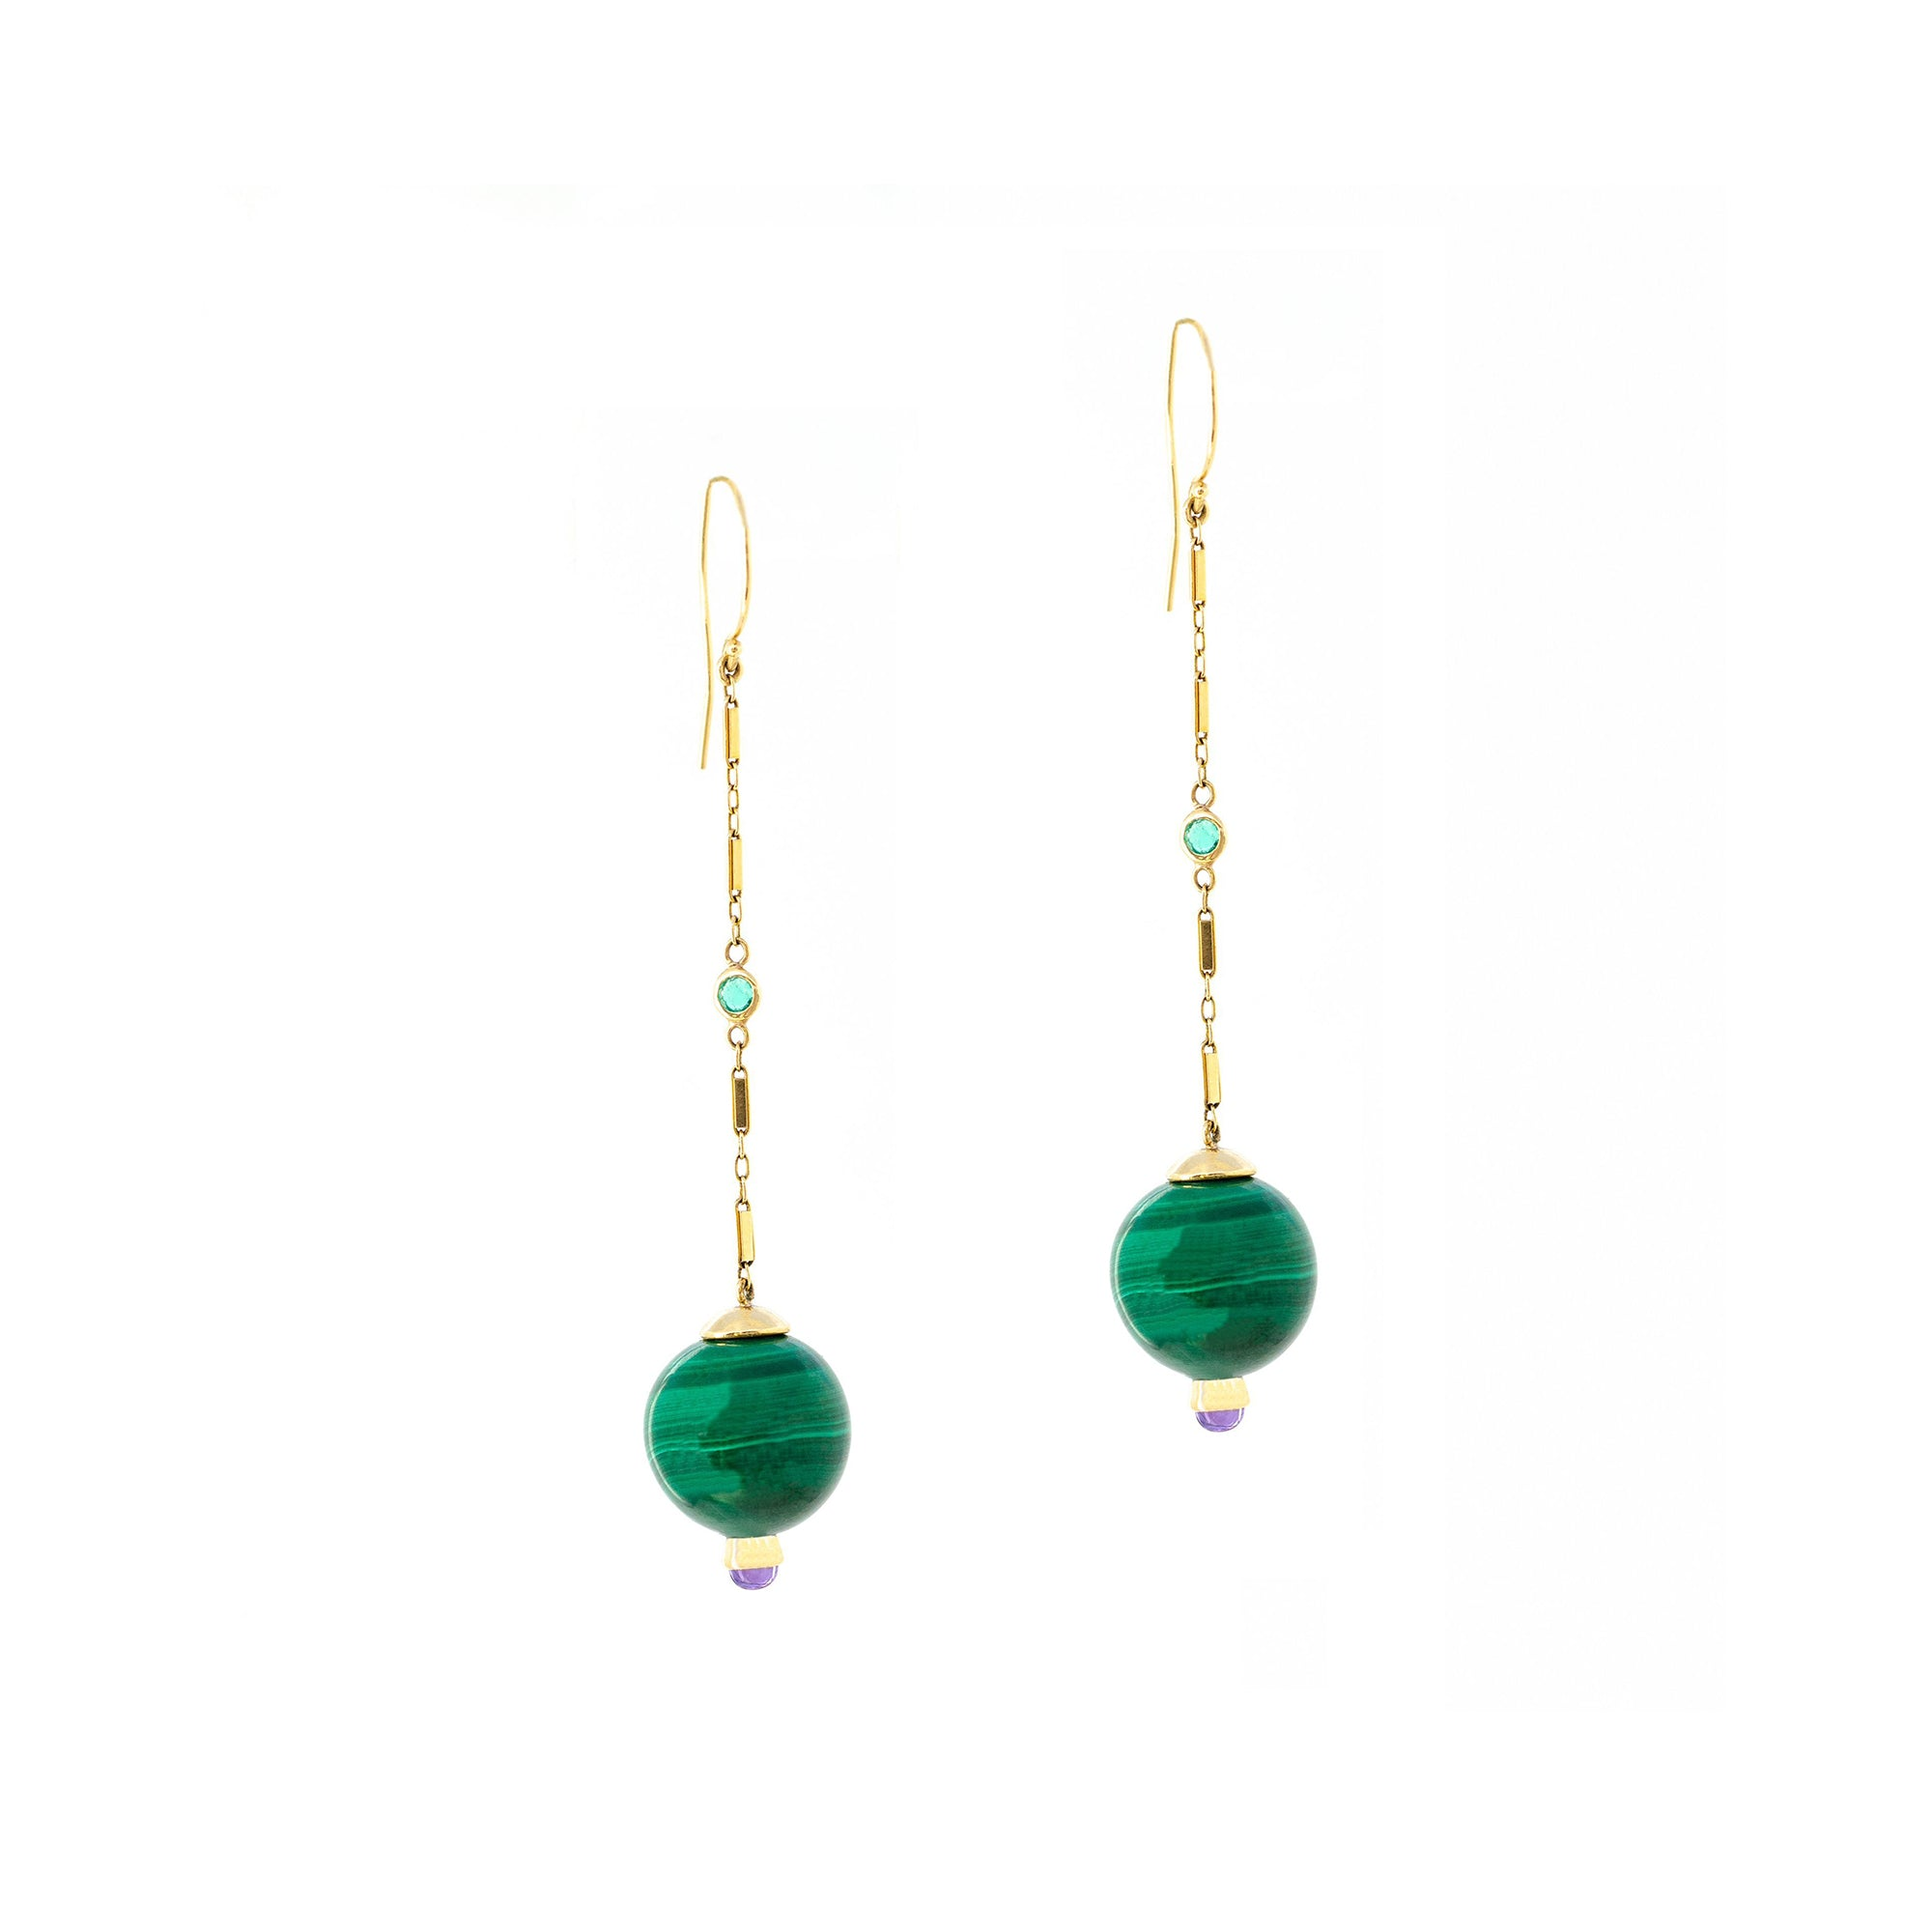 Haute Victoire Malachite & Amethyst Earrings - Earrings - Broken English Jewelry